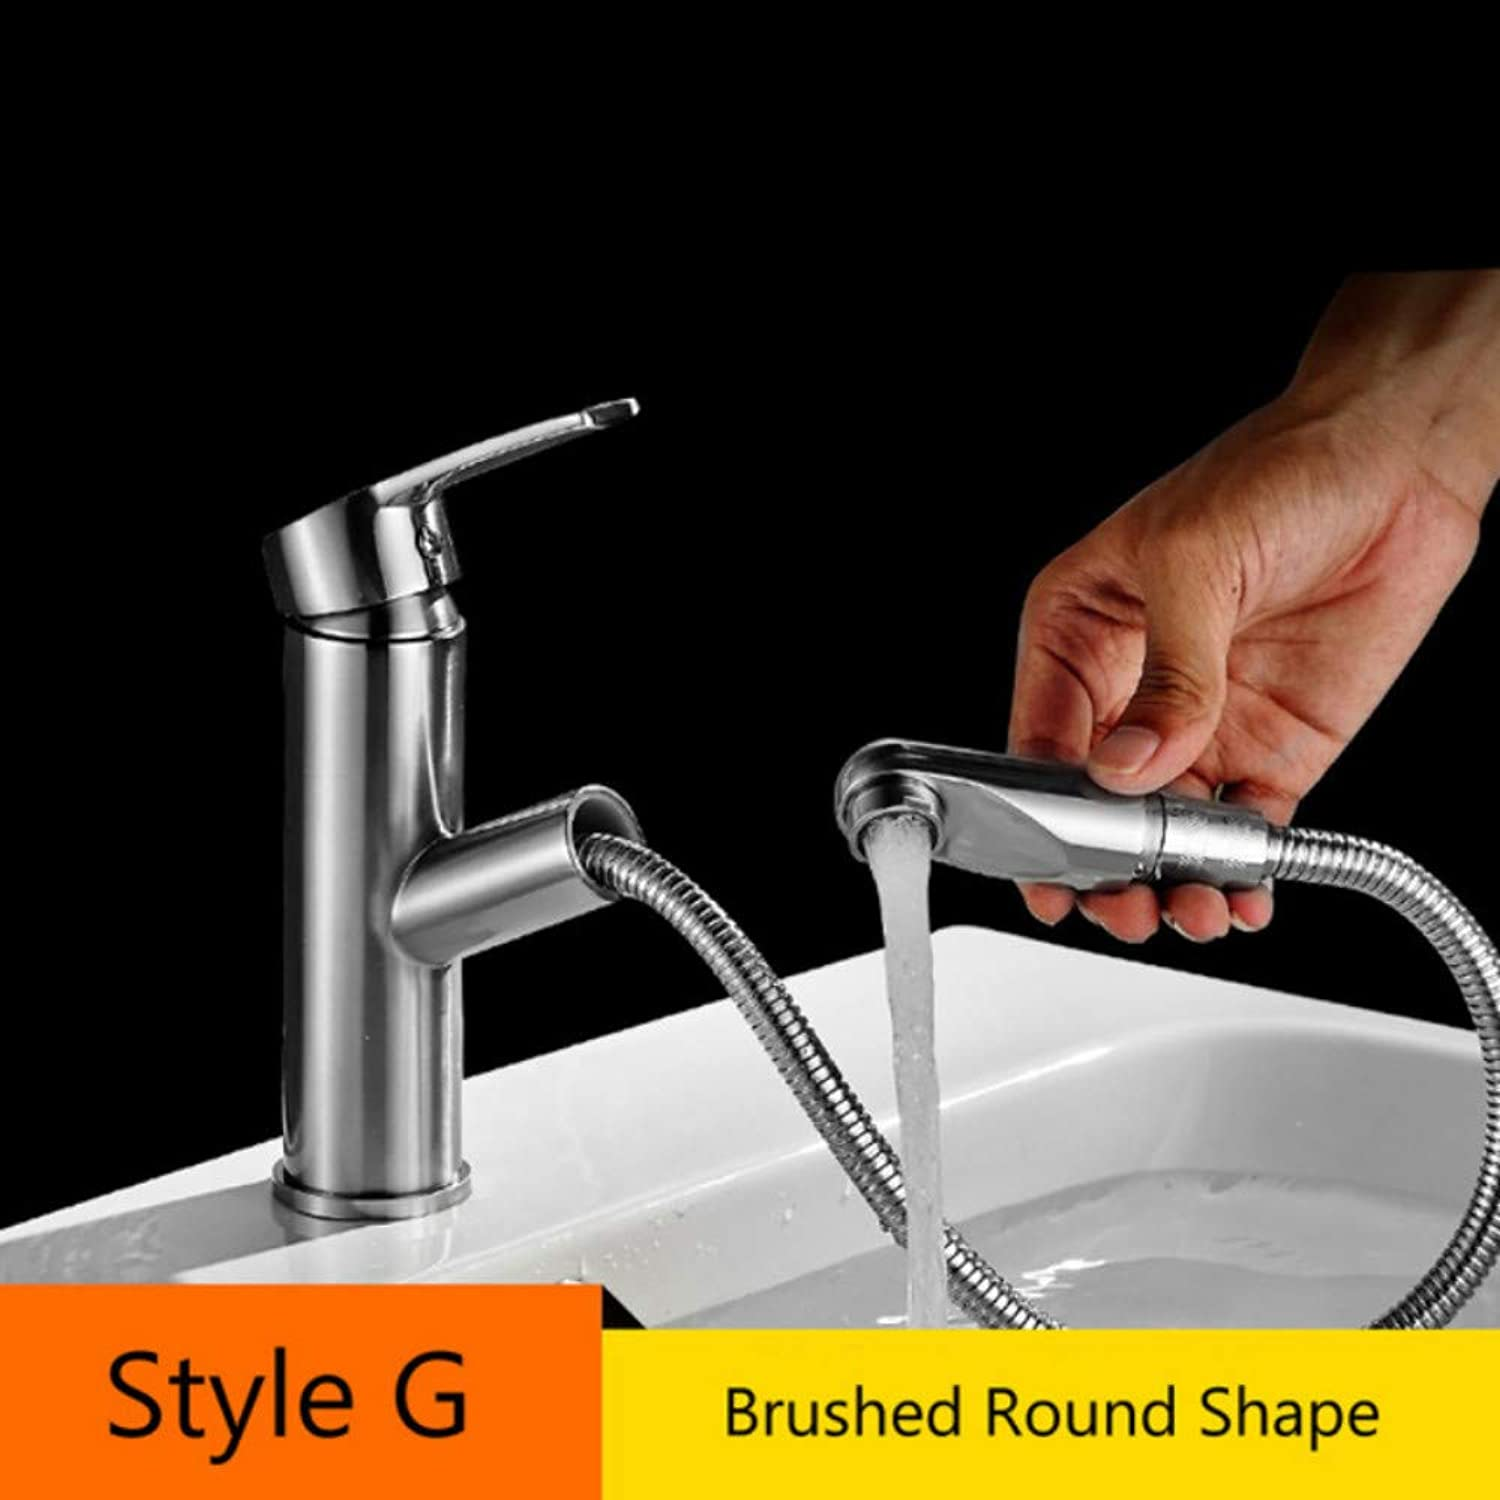 Mzdpp Luxury White Chrome Bathroom Faucet Deck Mounted Pull Out Brass Hot and Cold Kitchen Basin Vessel Sink Tap Single Lever One Hole,G